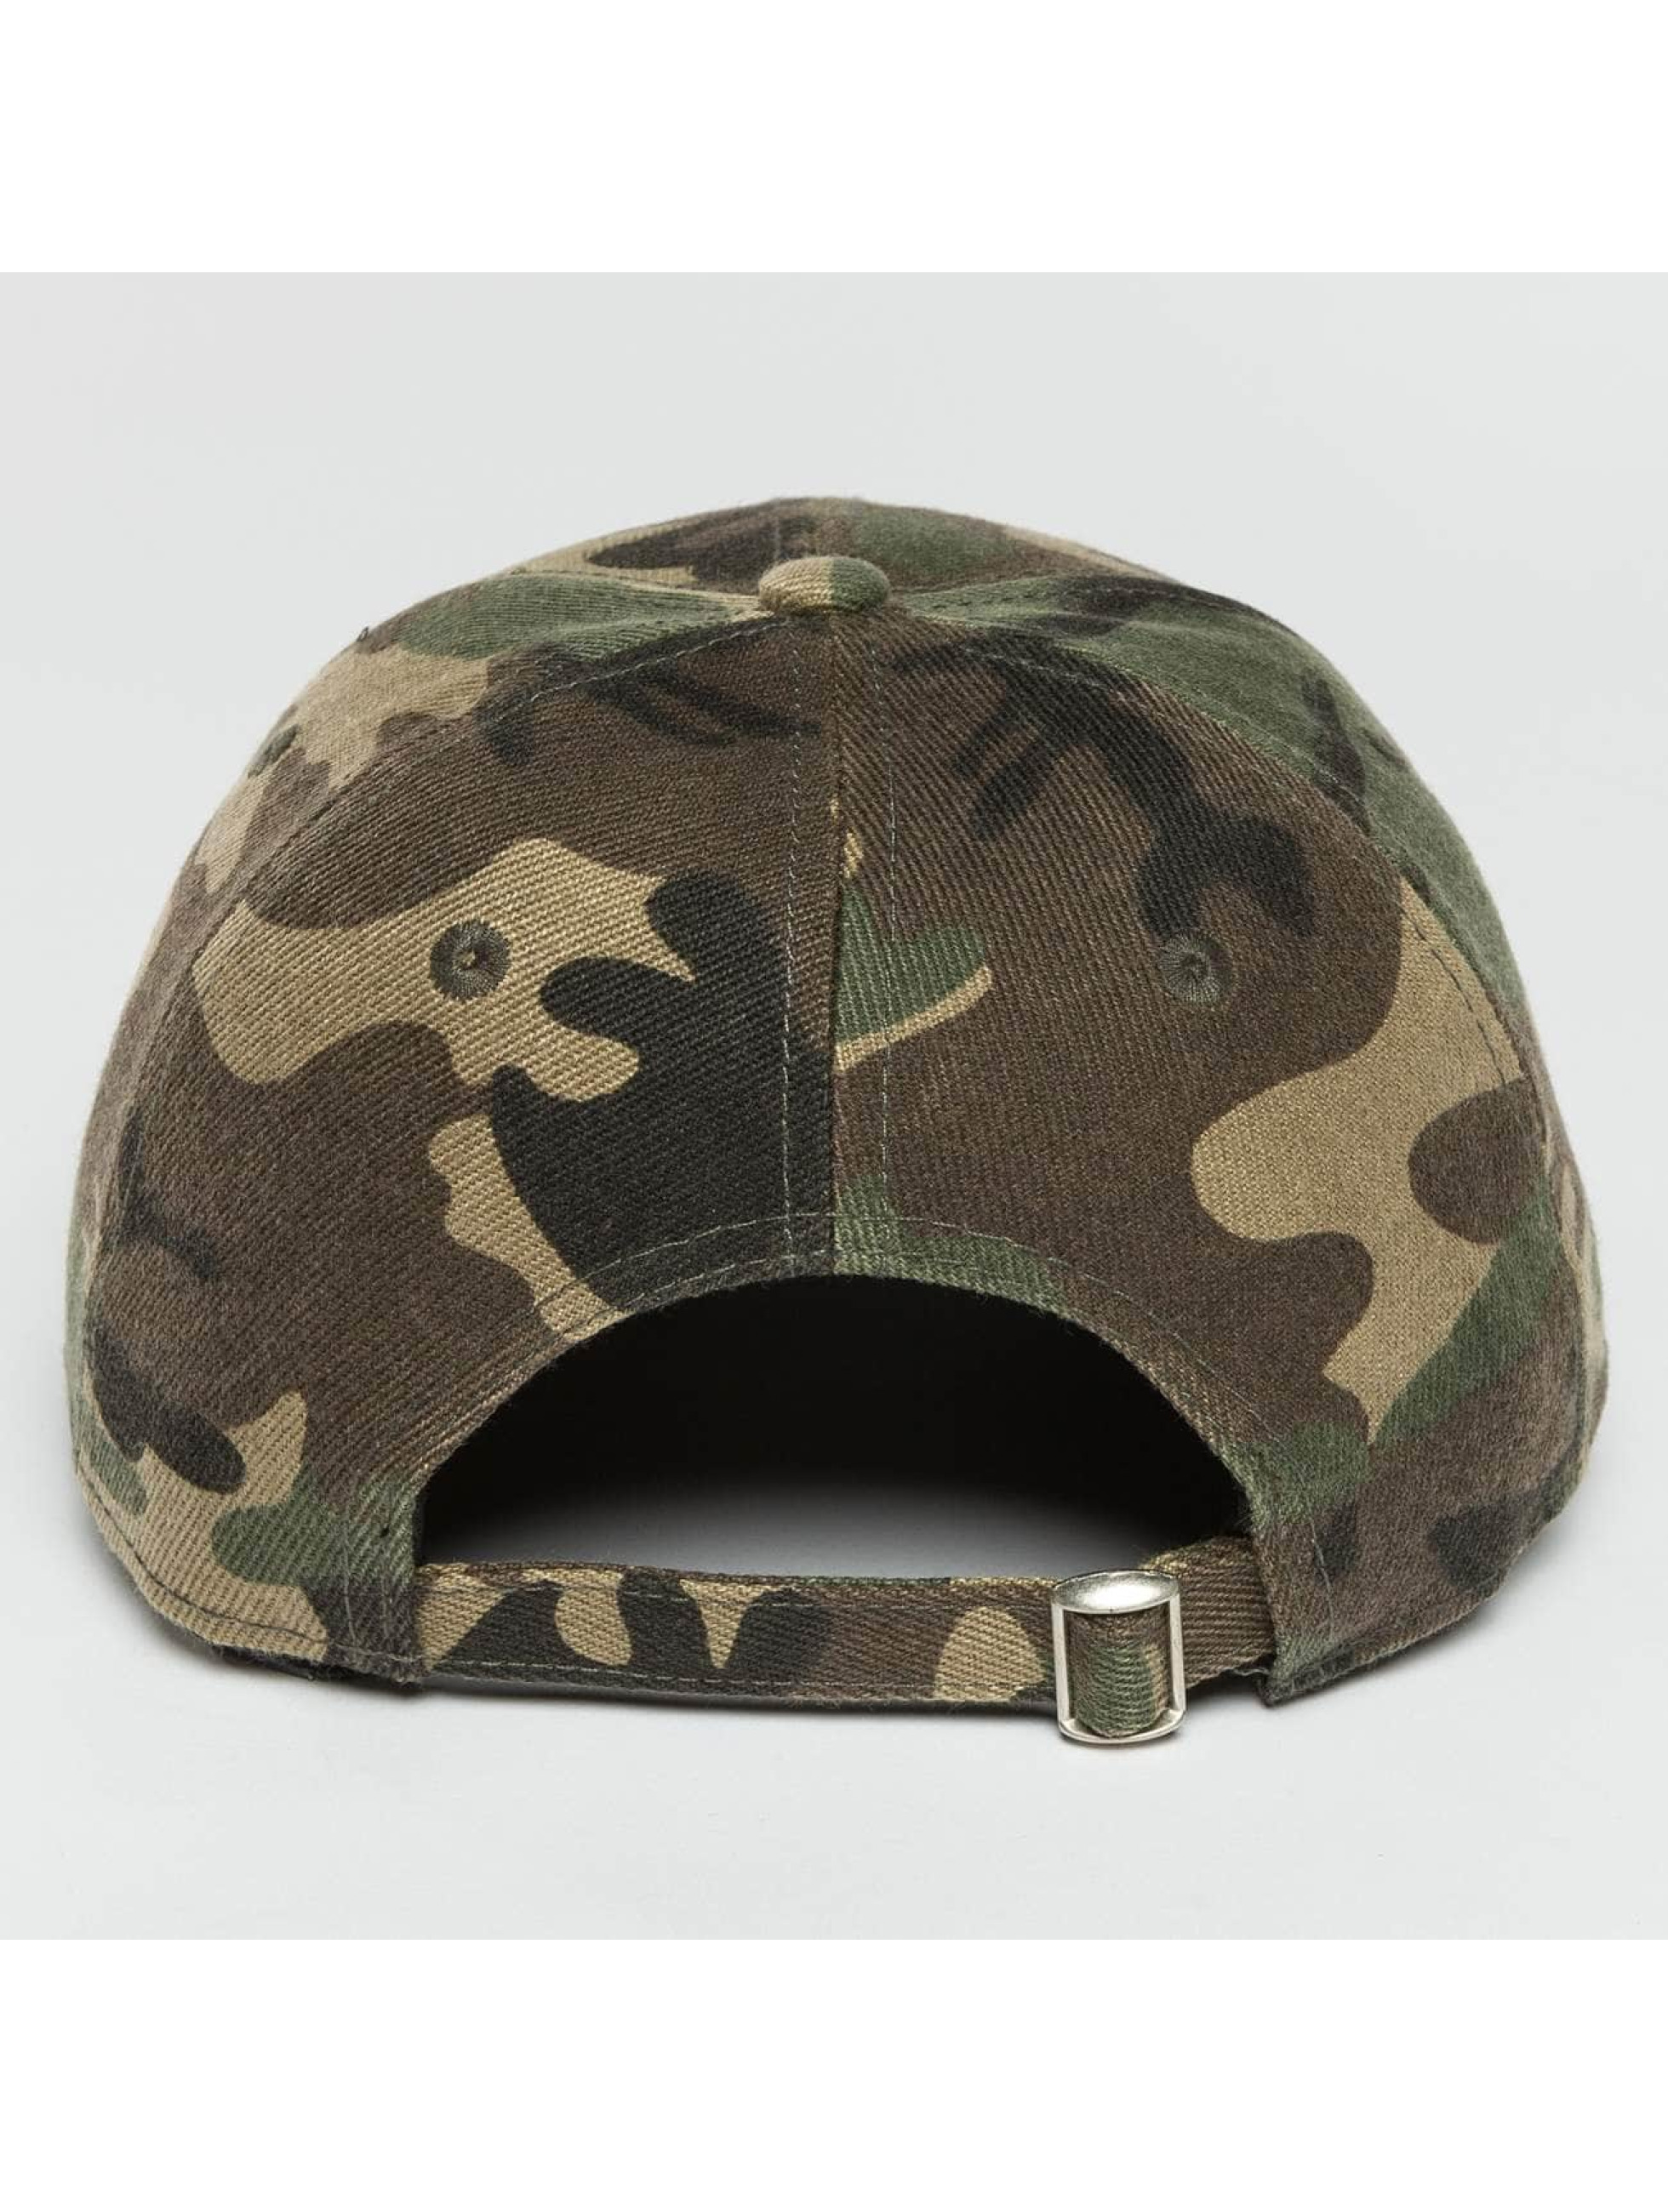 Distorted People Casquette Snapback & Strapback Blades camouflage